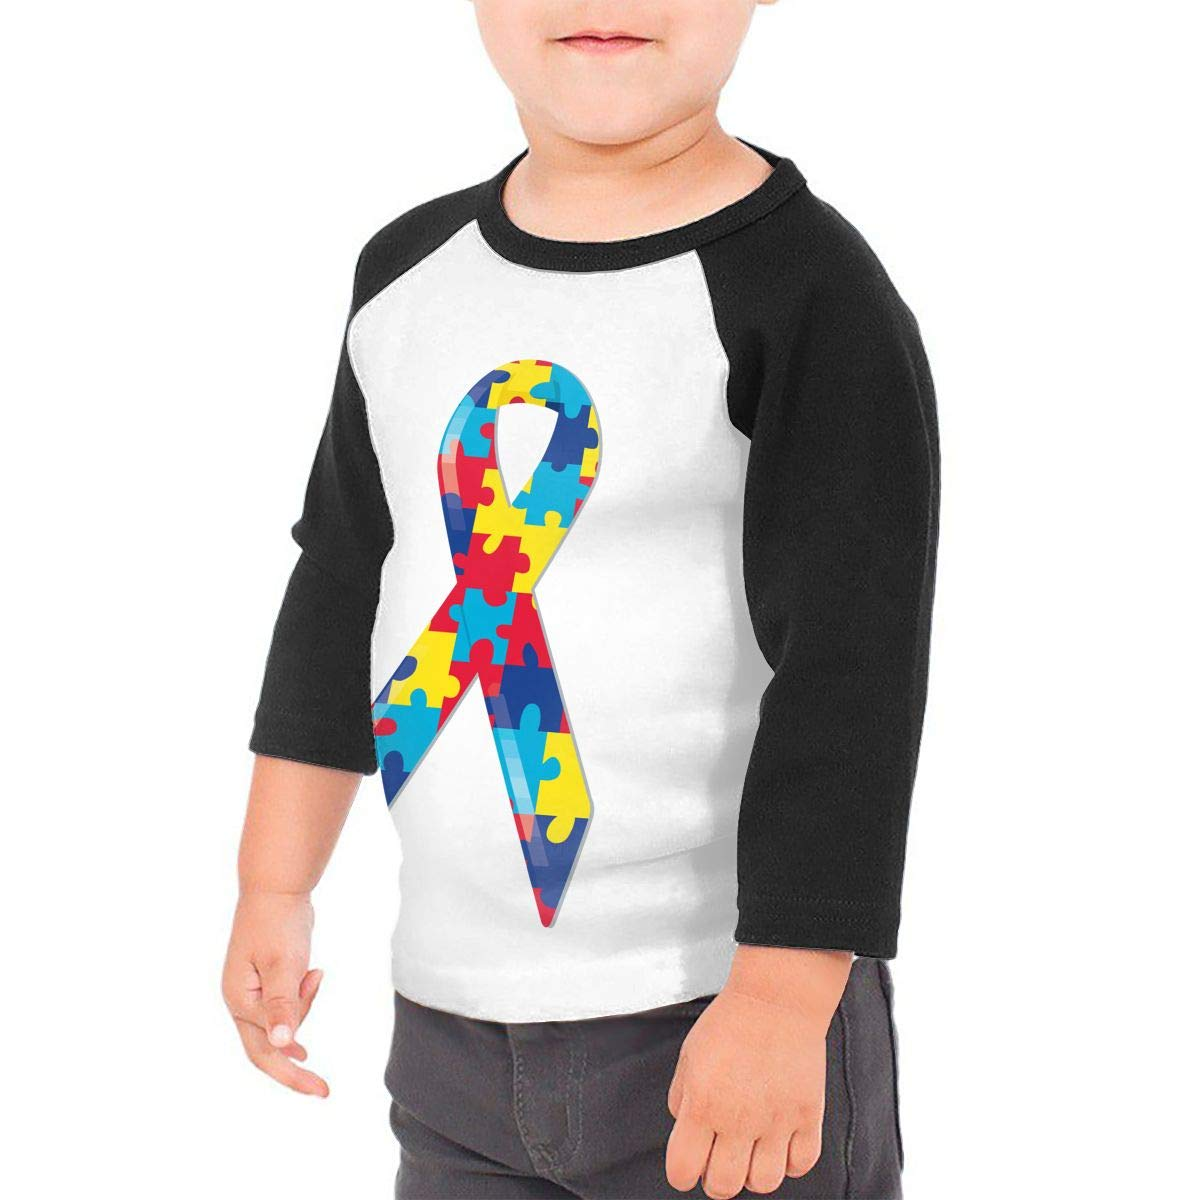 Autism Awareness Ribbon Kids Jersey Raglan T-Shirt Children 3//4 Sleeve Baseball Shirt Top